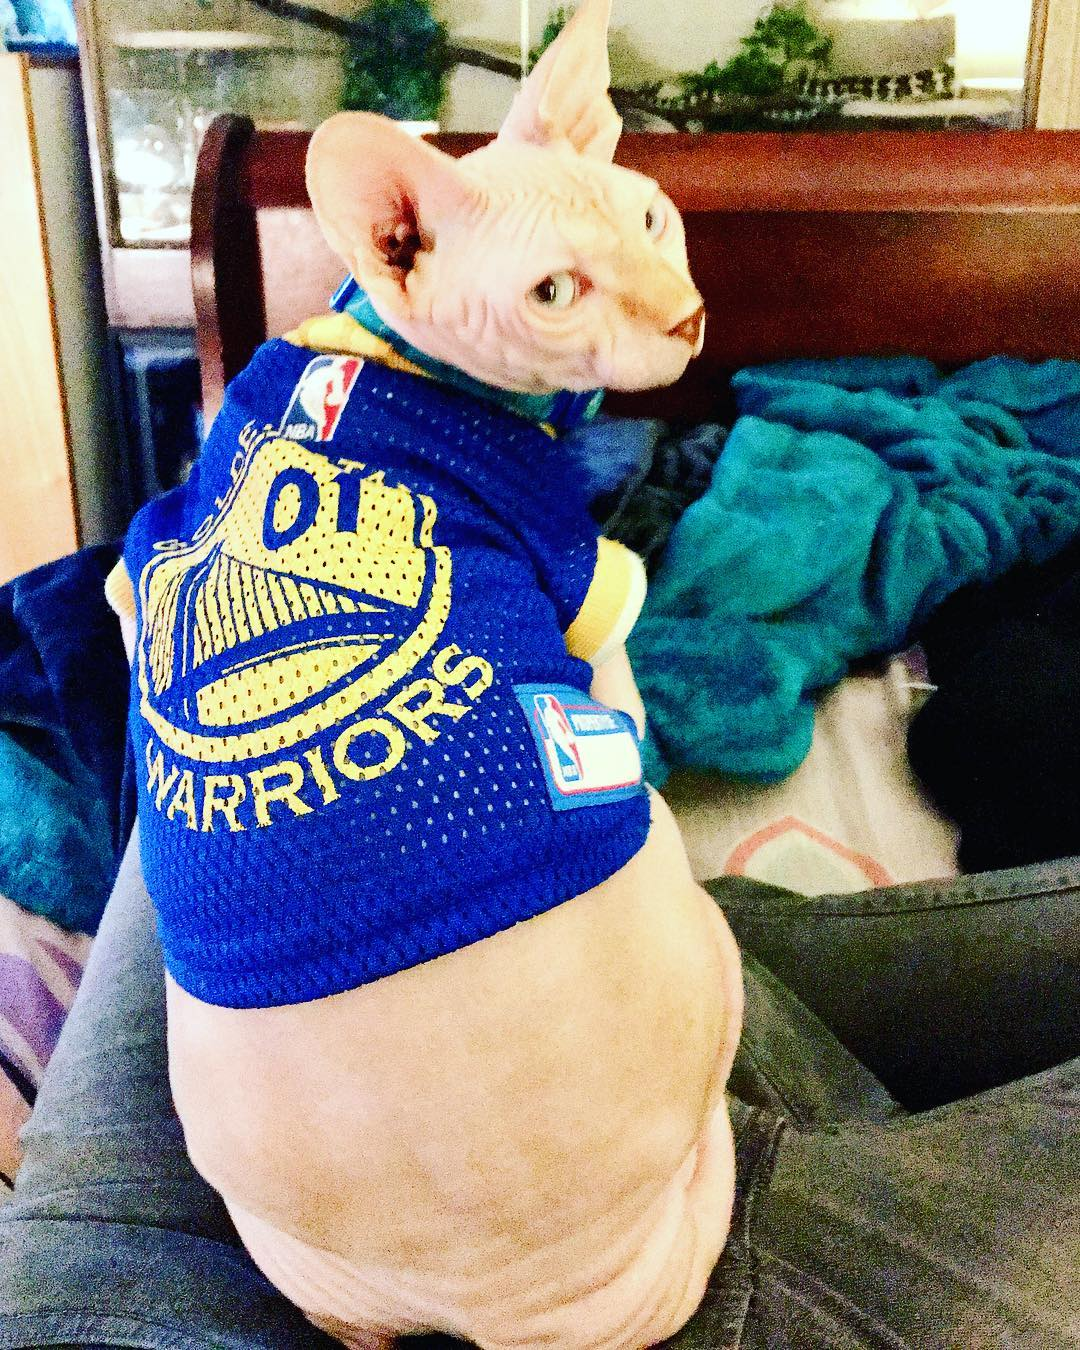 <div class='meta'><div class='origin-logo' data-origin='none'></div><span class='caption-text' data-credit='Photo submitted to KGO-TV by dannigoneherp/Instagram'>Warriors fans show their spirit during the 2017-2018 season. Share your photos using #DubsOn7 and you may see them online or on TV!</span></div>